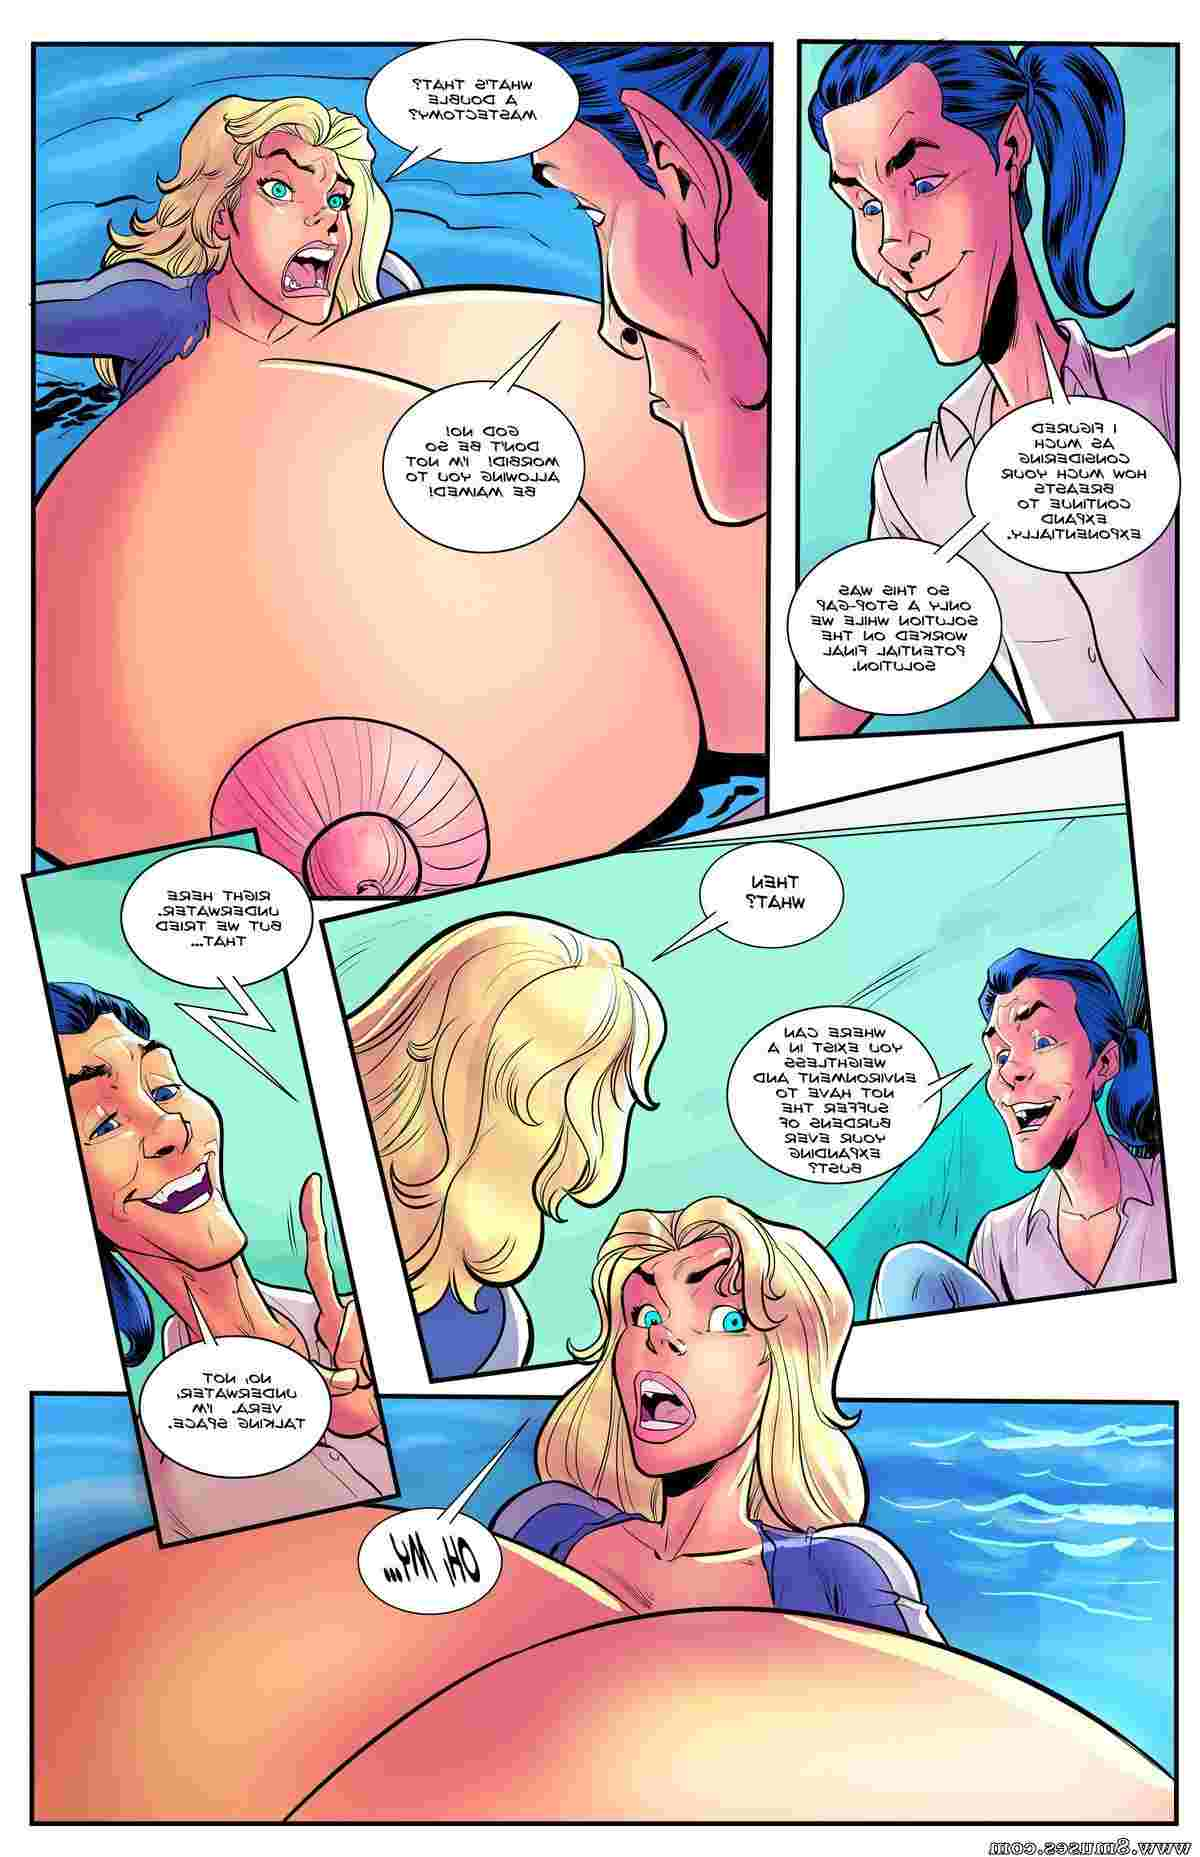 BE-Story-Club-Comics/Massive Massive__8muses_-_Sex_and_Porn_Comics_66.jpg